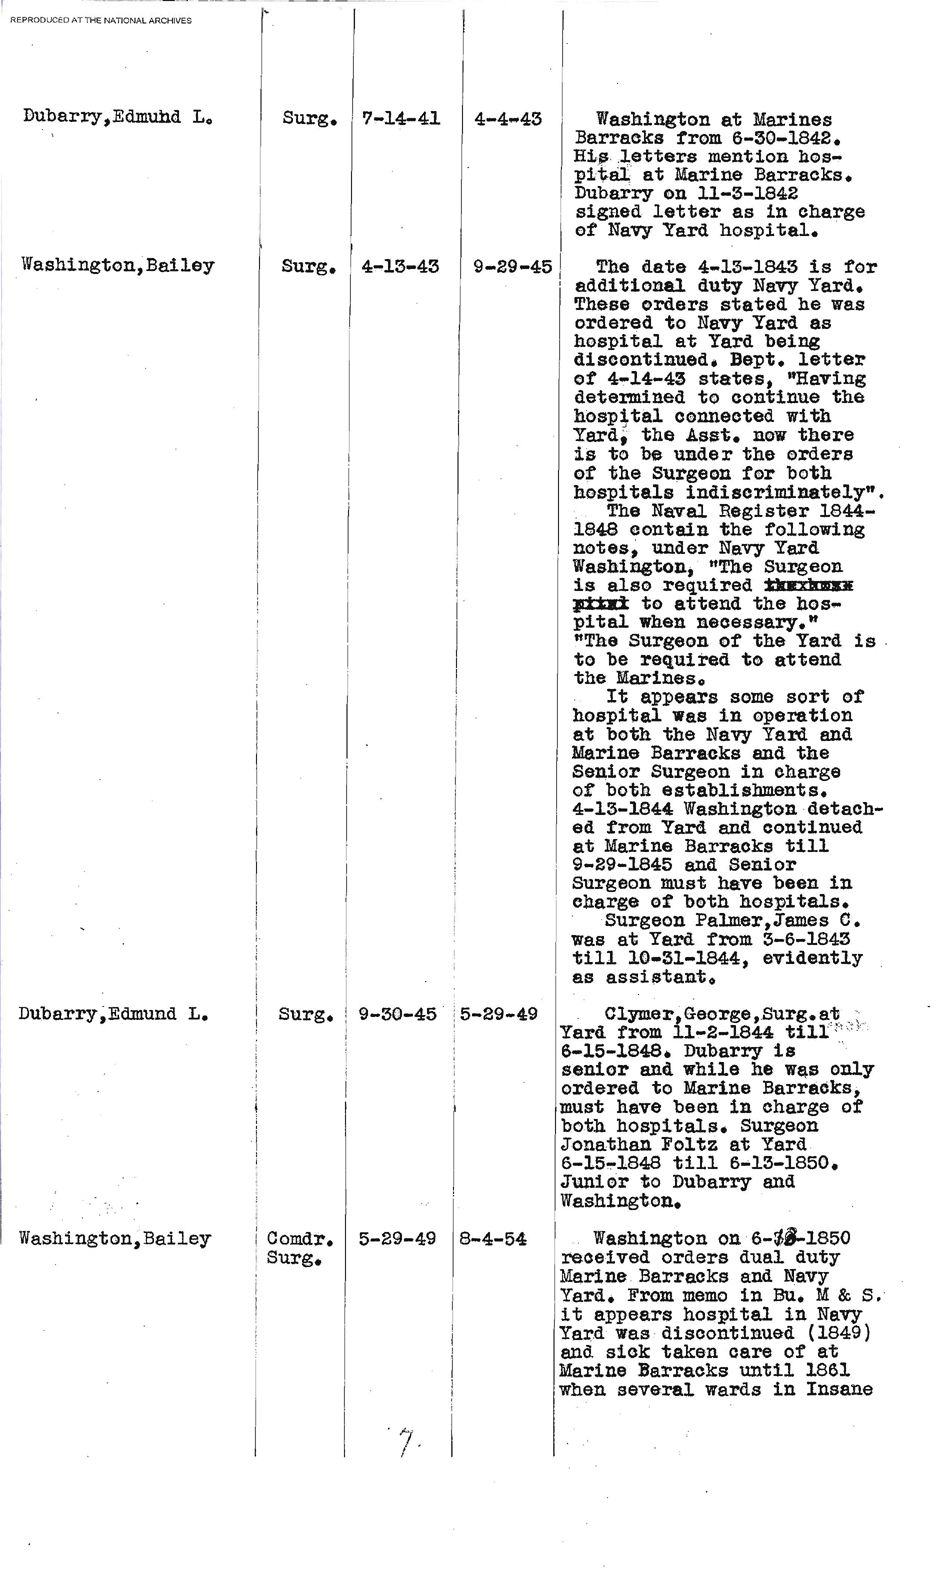 Roster of Commanding Officers of the Naval Hospital, Washington, DC, Page 7